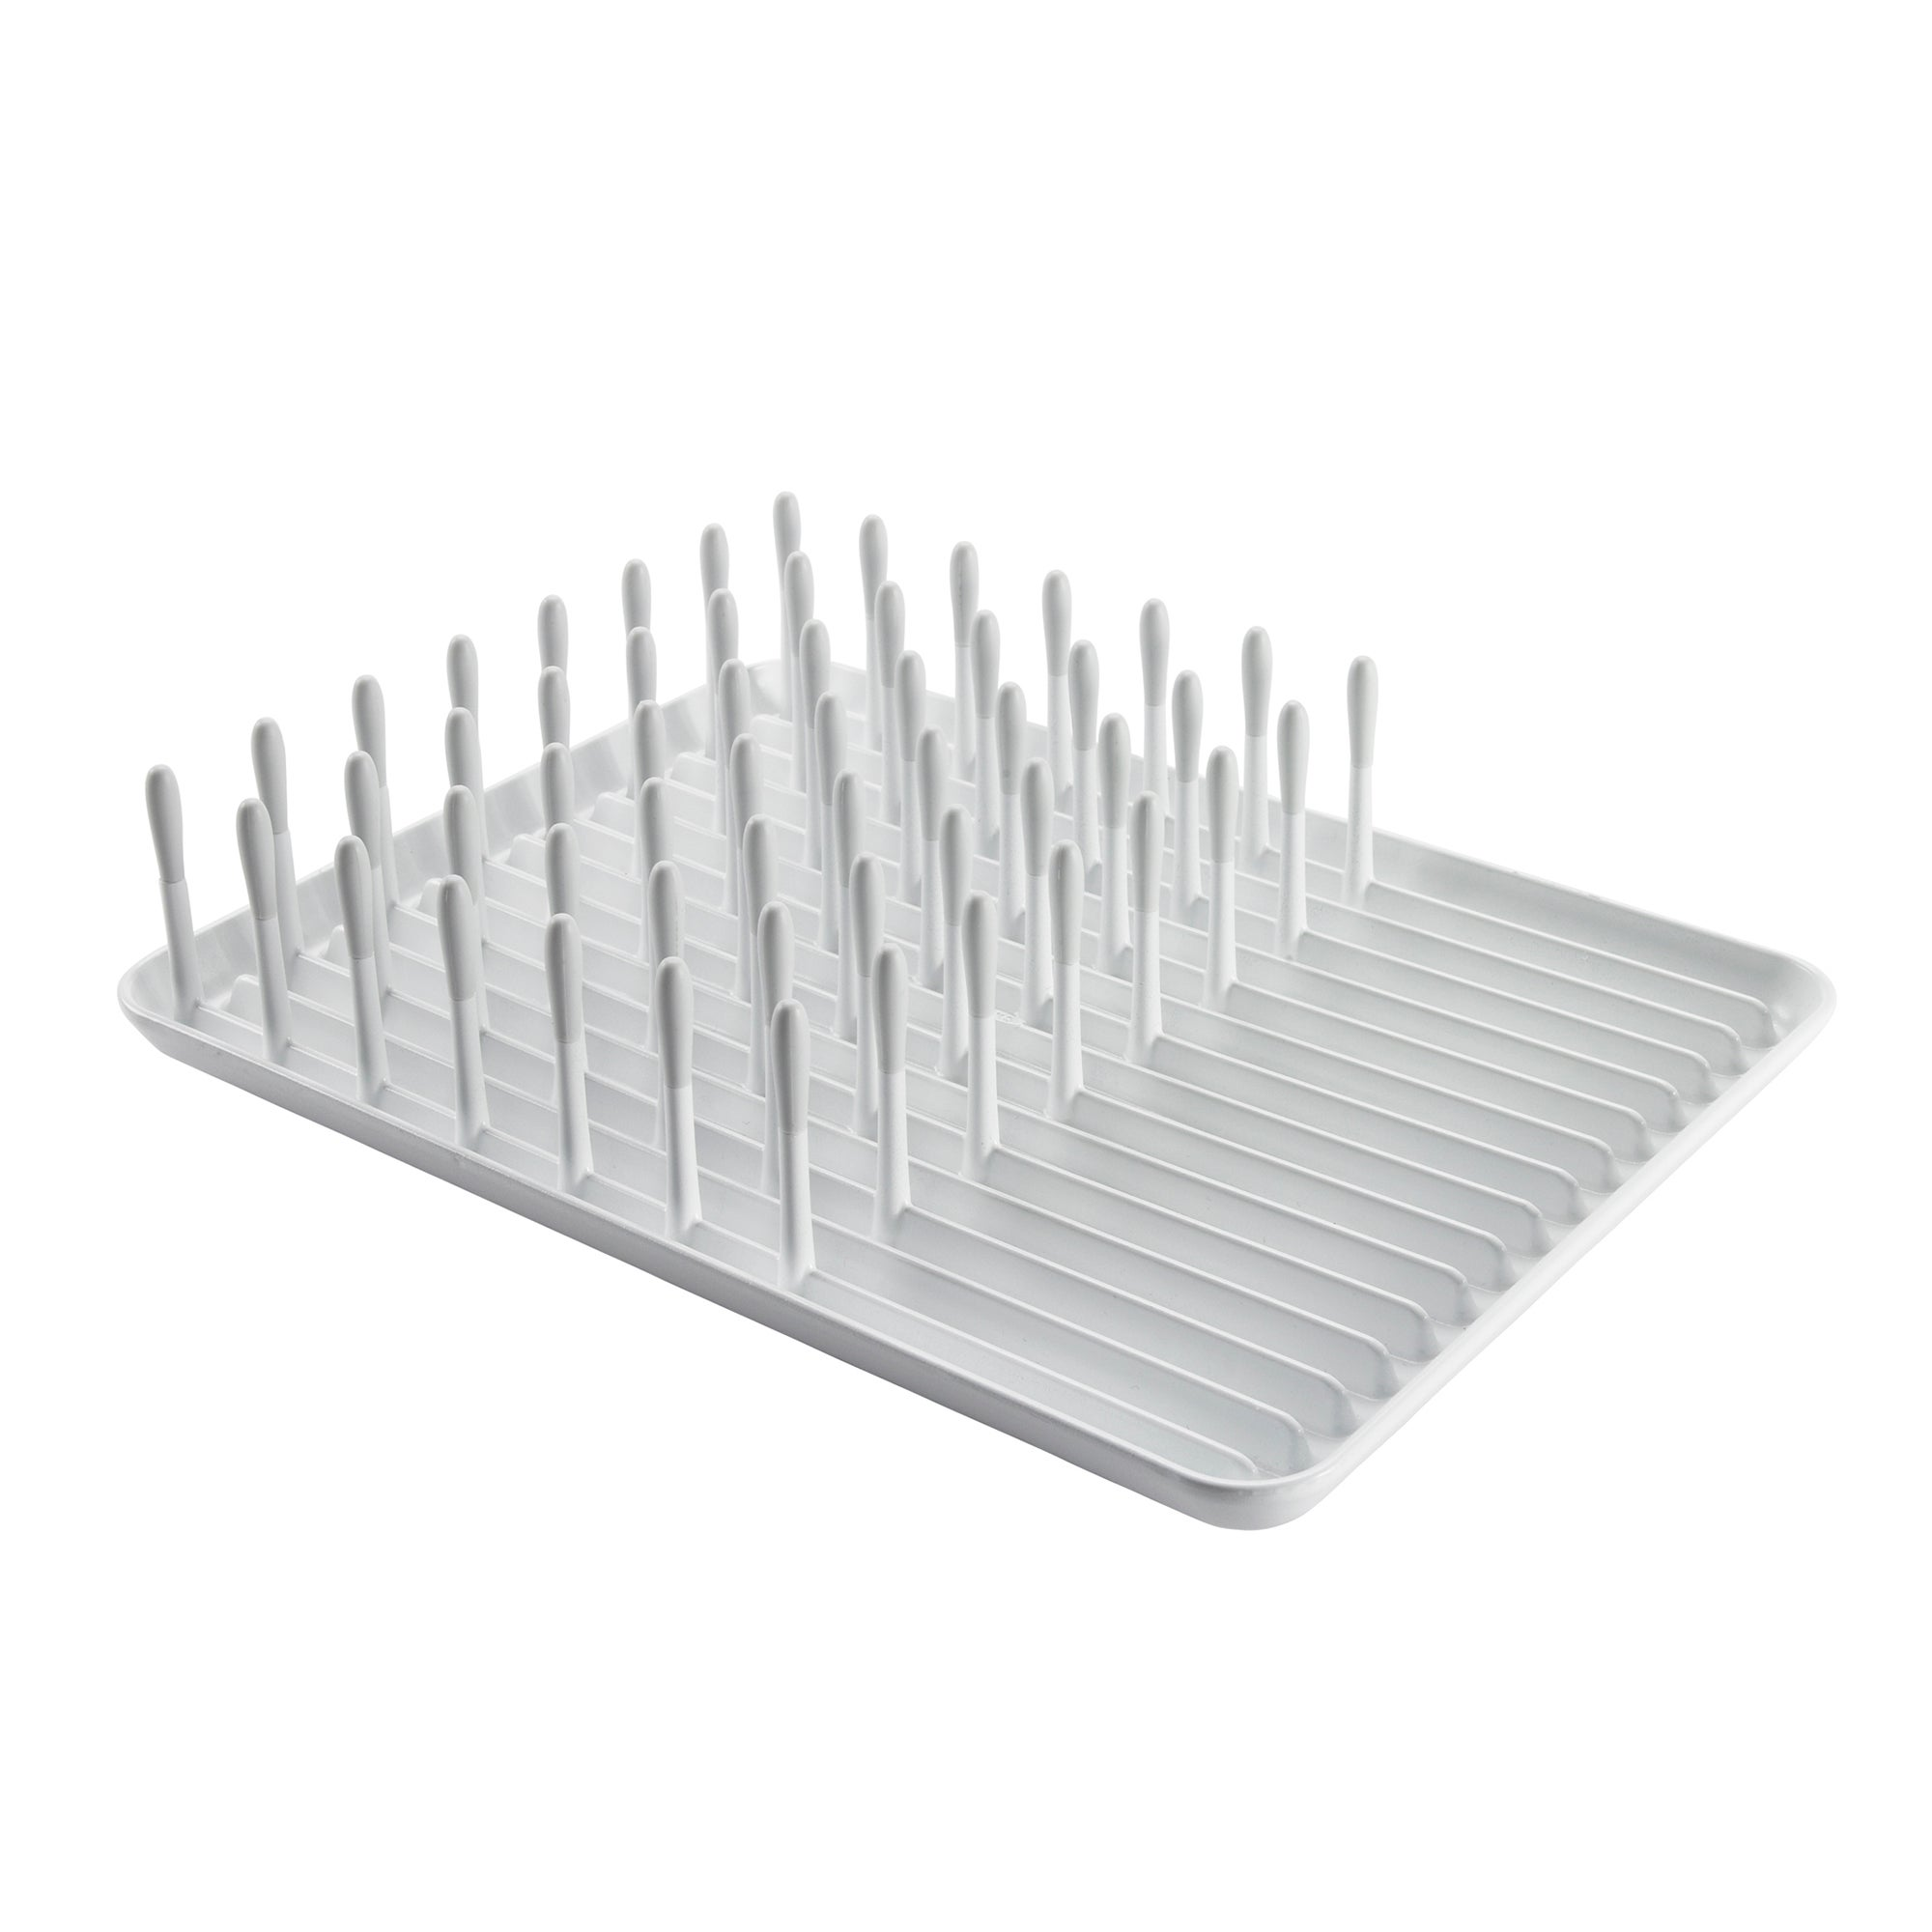 OXO Good Grips Dish Rack